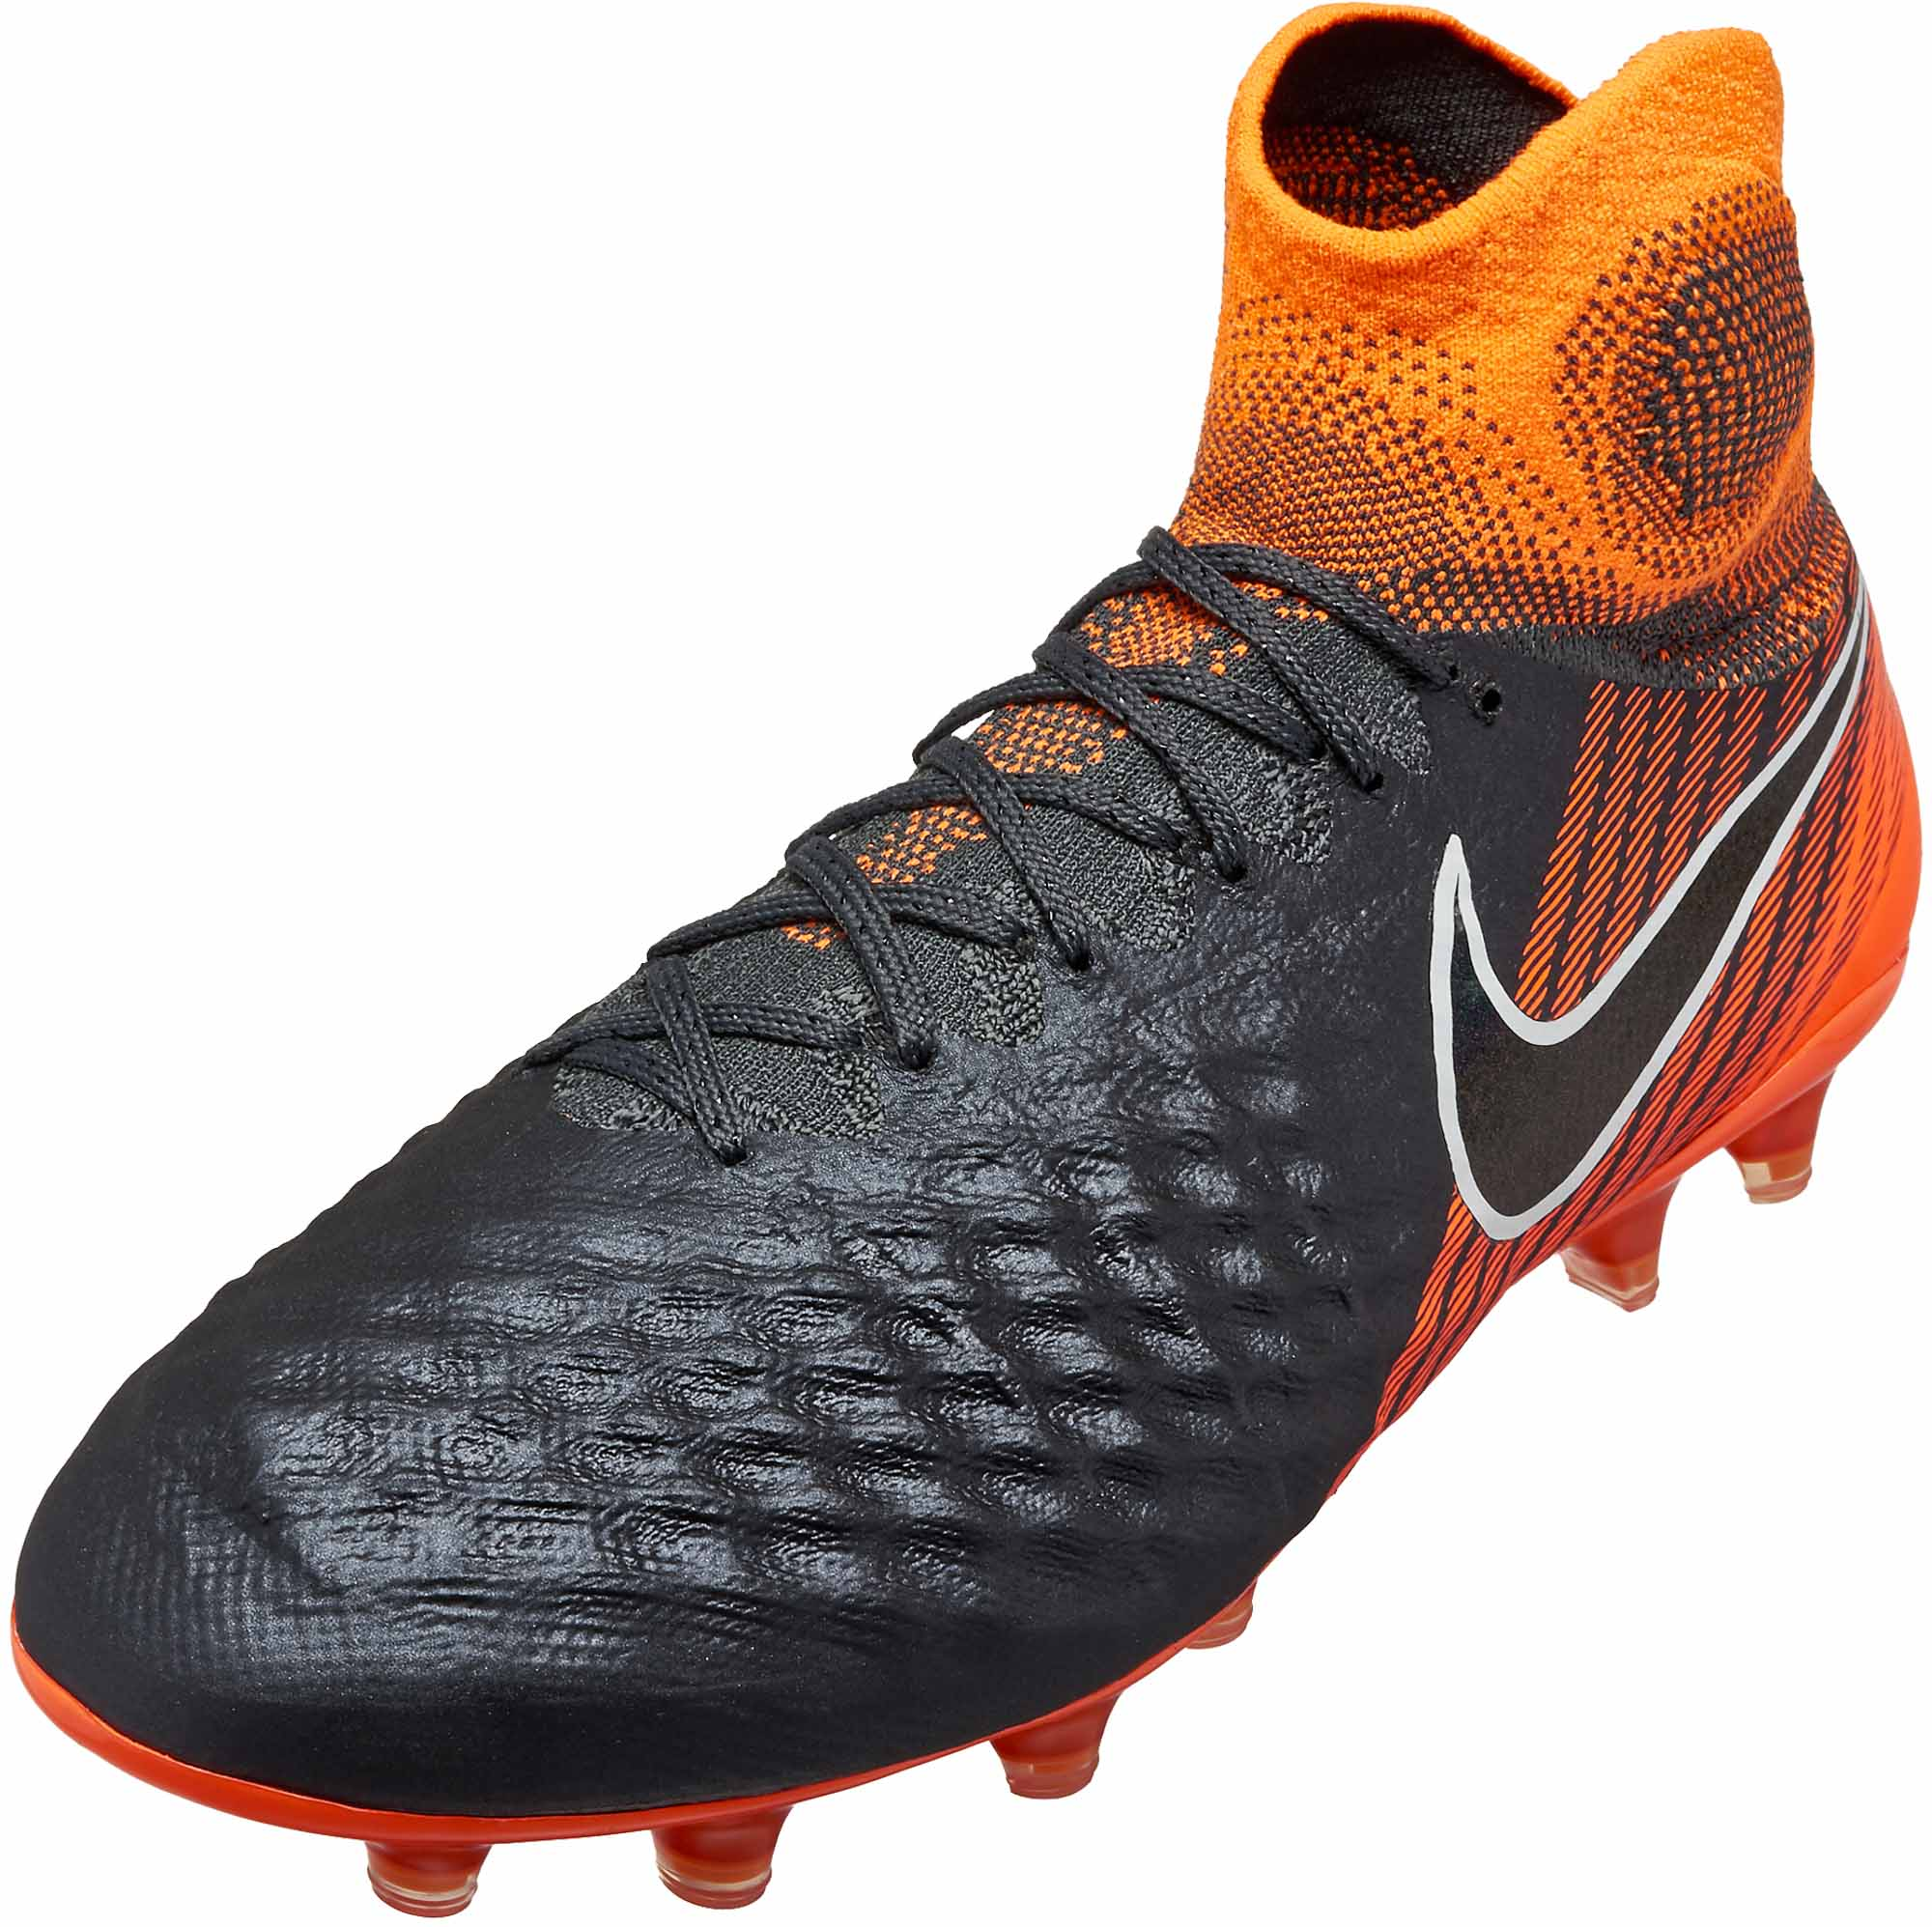 89c98b1ad8dc Nike Magista Obra 2 Elite DF FG – Dark Grey Total Orange